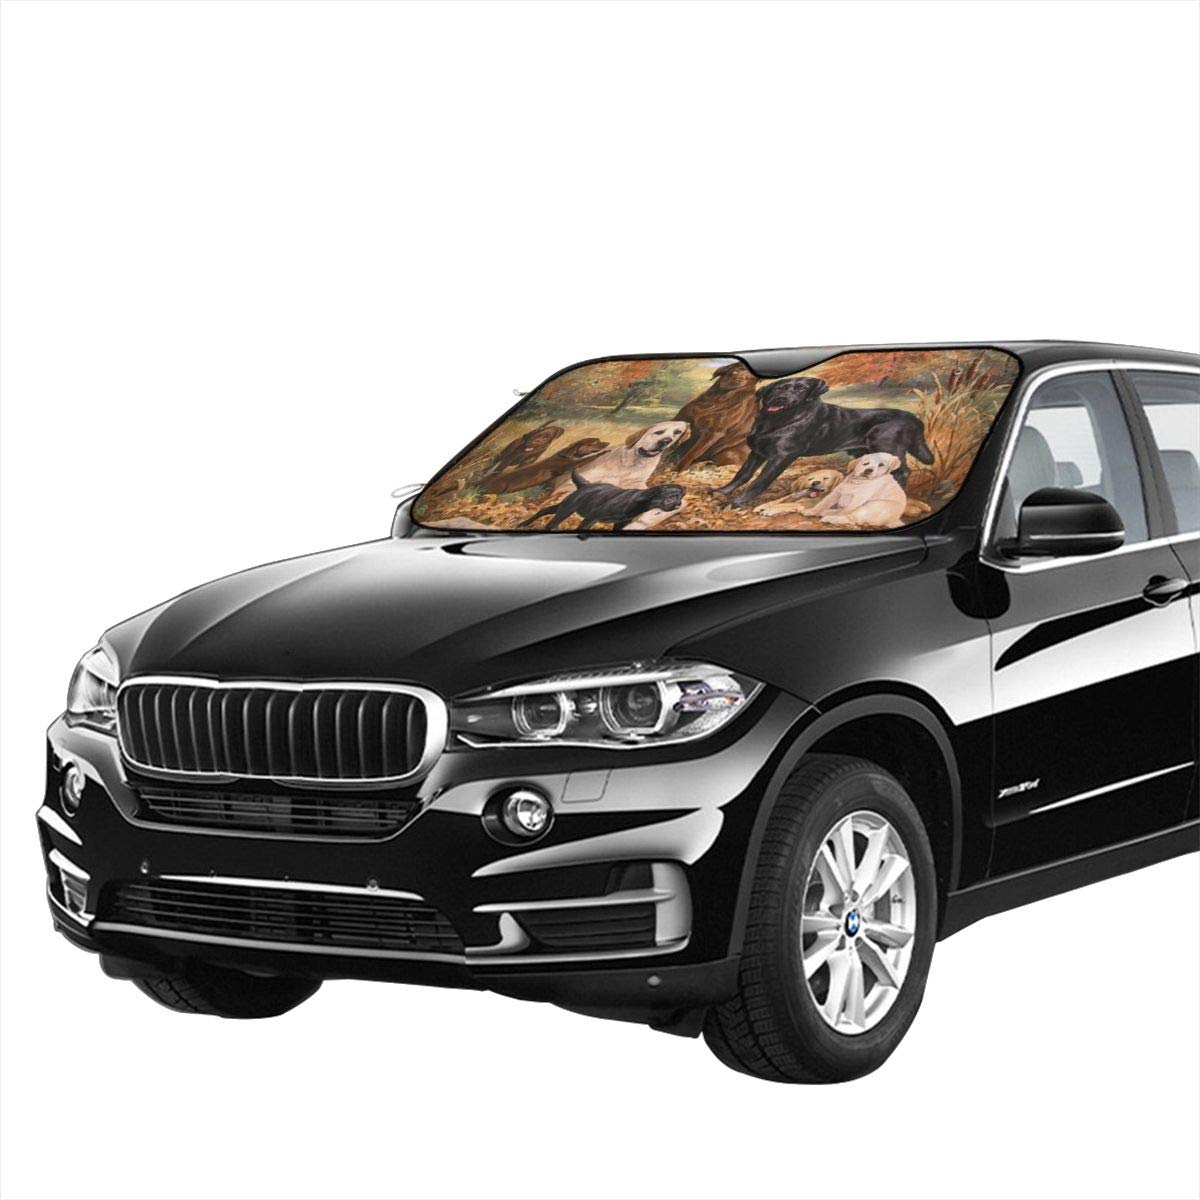 Interior Accessories Sunshades CARHDFRI My Pet Dog Family Oil Painting Cute Automotive Windshield Sunshades 27.5 X 51 Inch UV and Sun Protection Cover Auto Sun Shade Keep Cool for Car SUV Truck,Windshield Sunshades